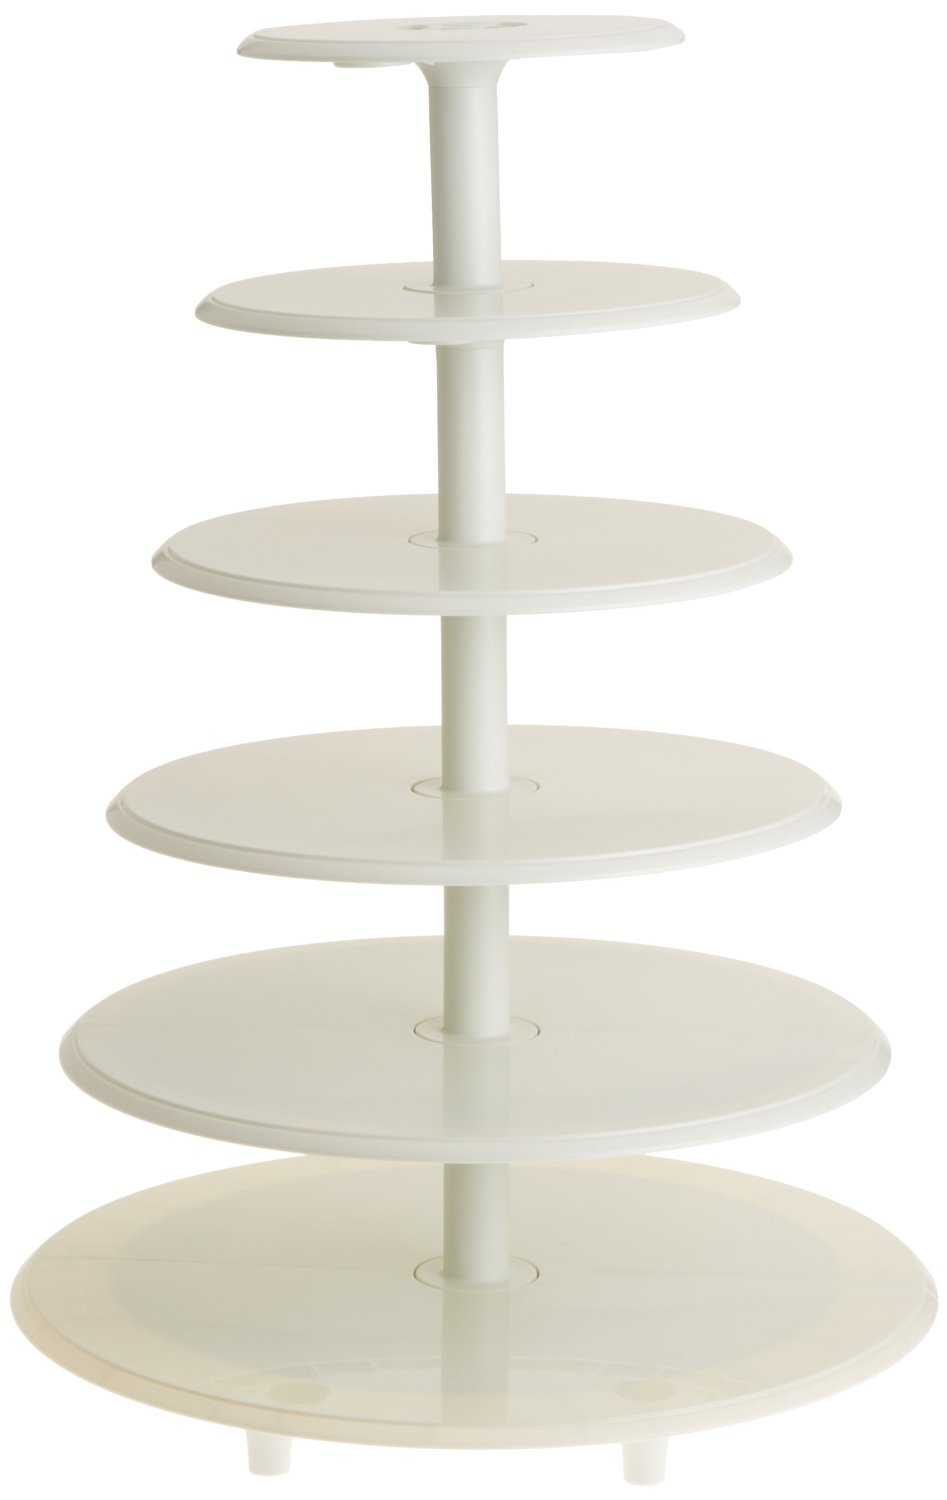 Wilton Towering Tiers Cake Stand  sc 1 st  snackncake & 13 Towering Tiers Cake Stand With Cupcakes Photo - Wilton Towering ...